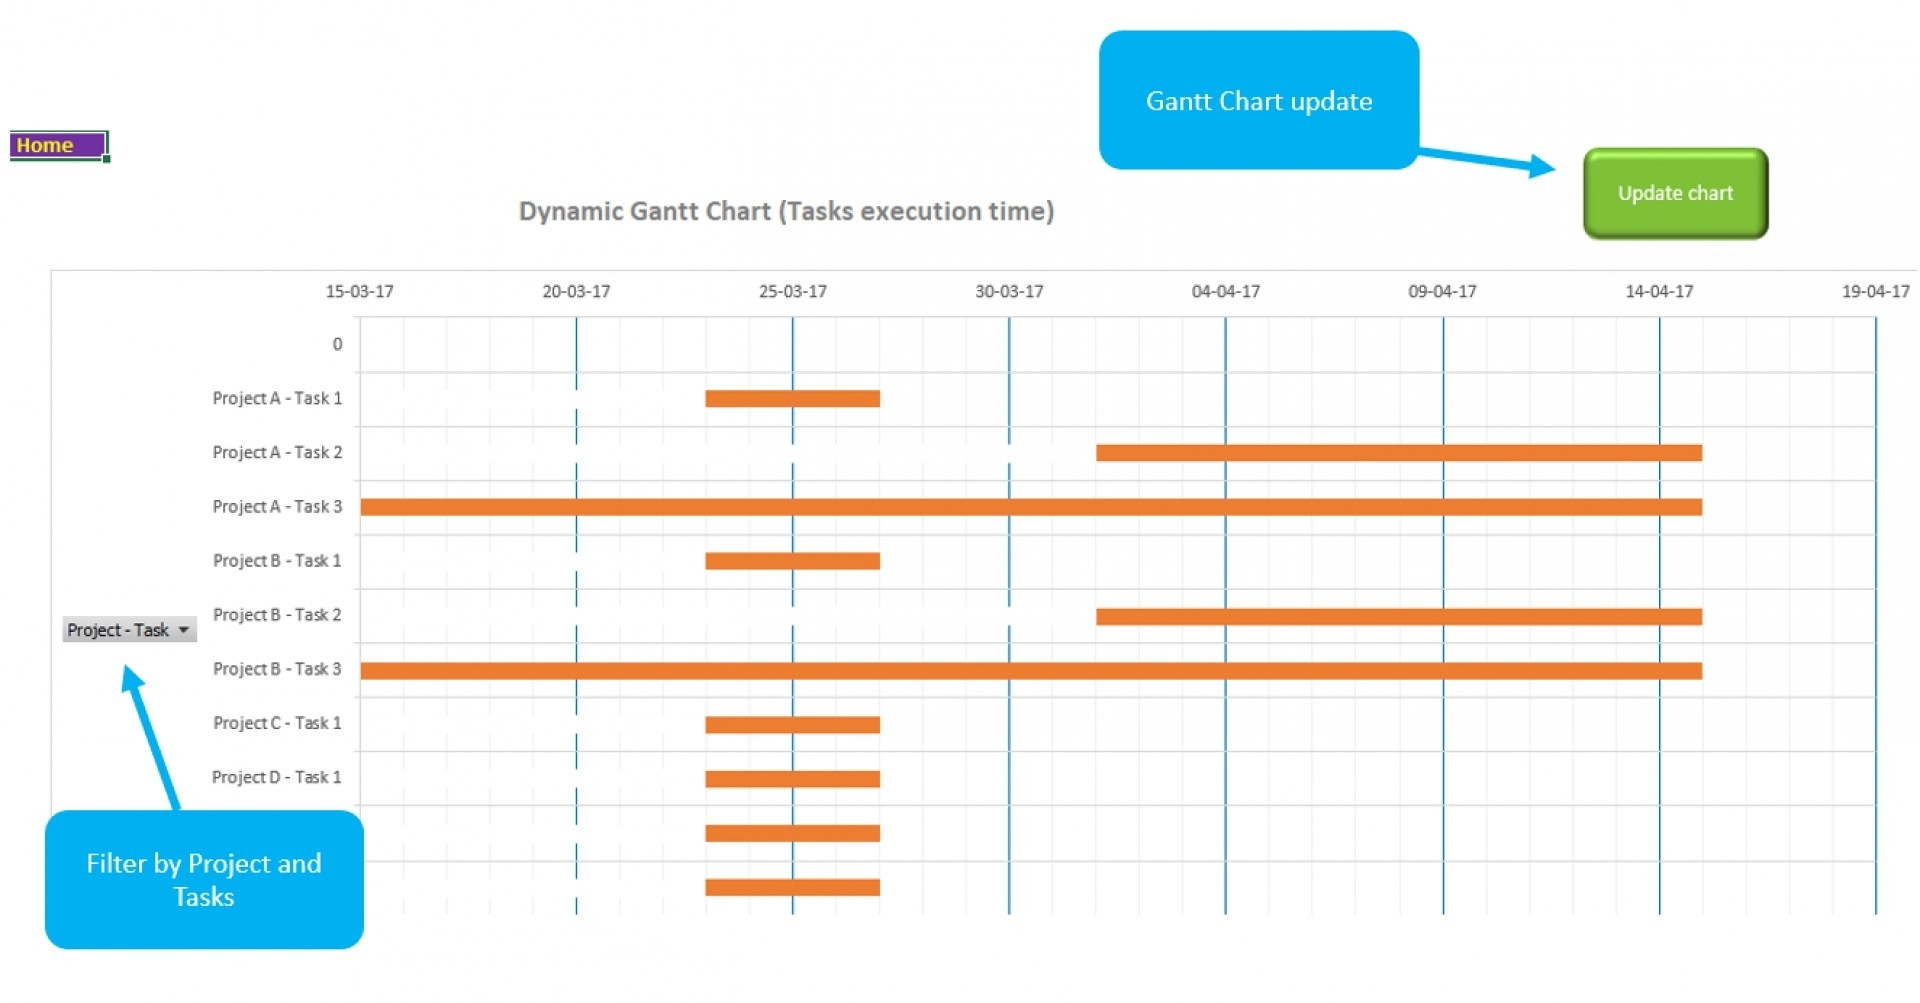 Plan Template The Most Popular Gantt Chart Templates To Use In intended for Printable Weekly Schedule Flow Chart